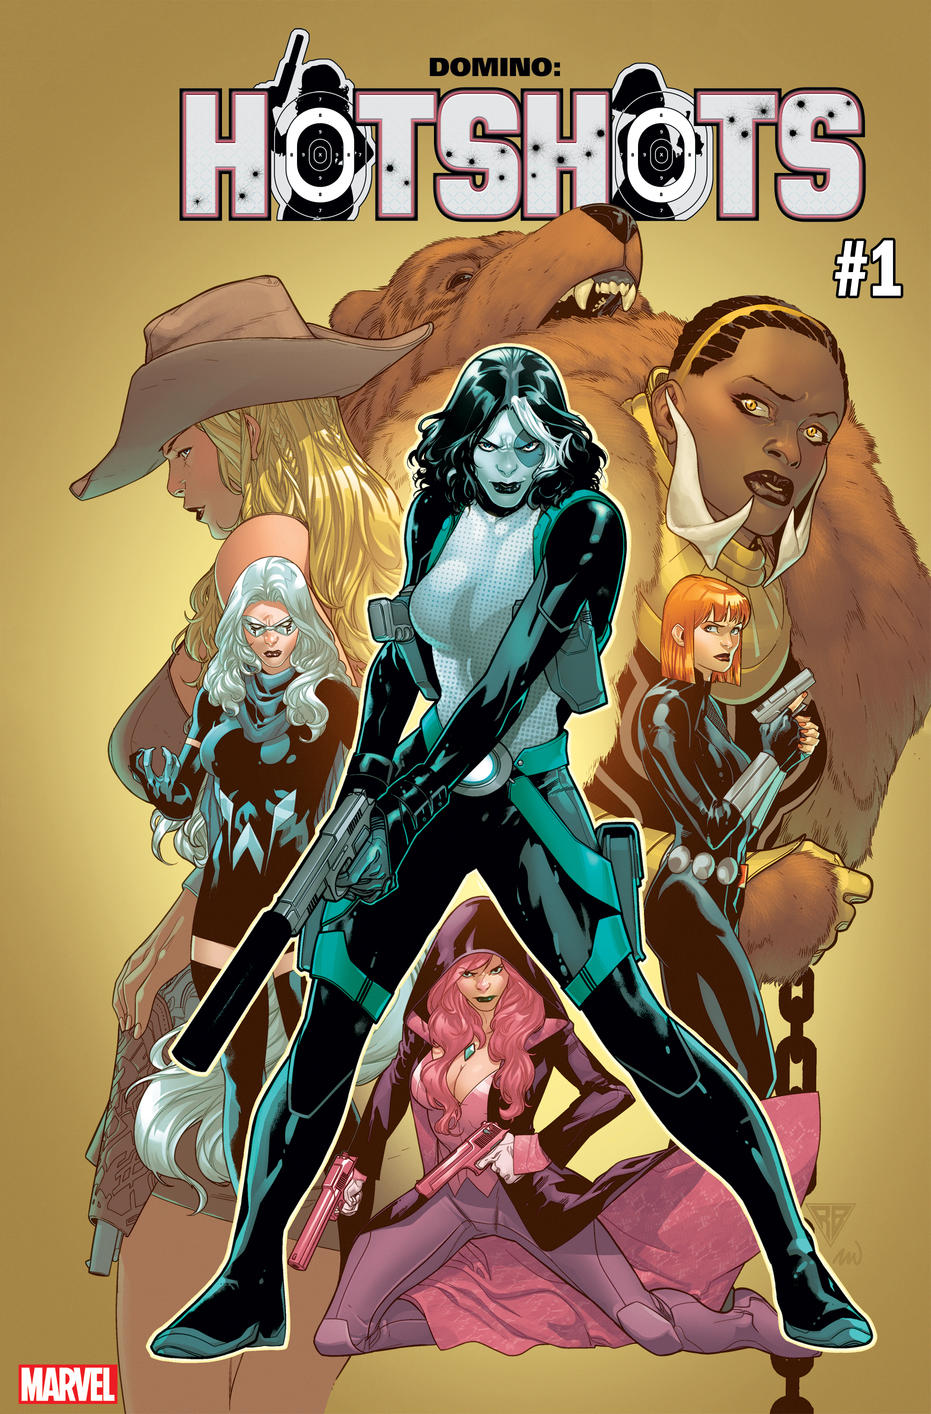 Cover of Domino: Hotshots #1